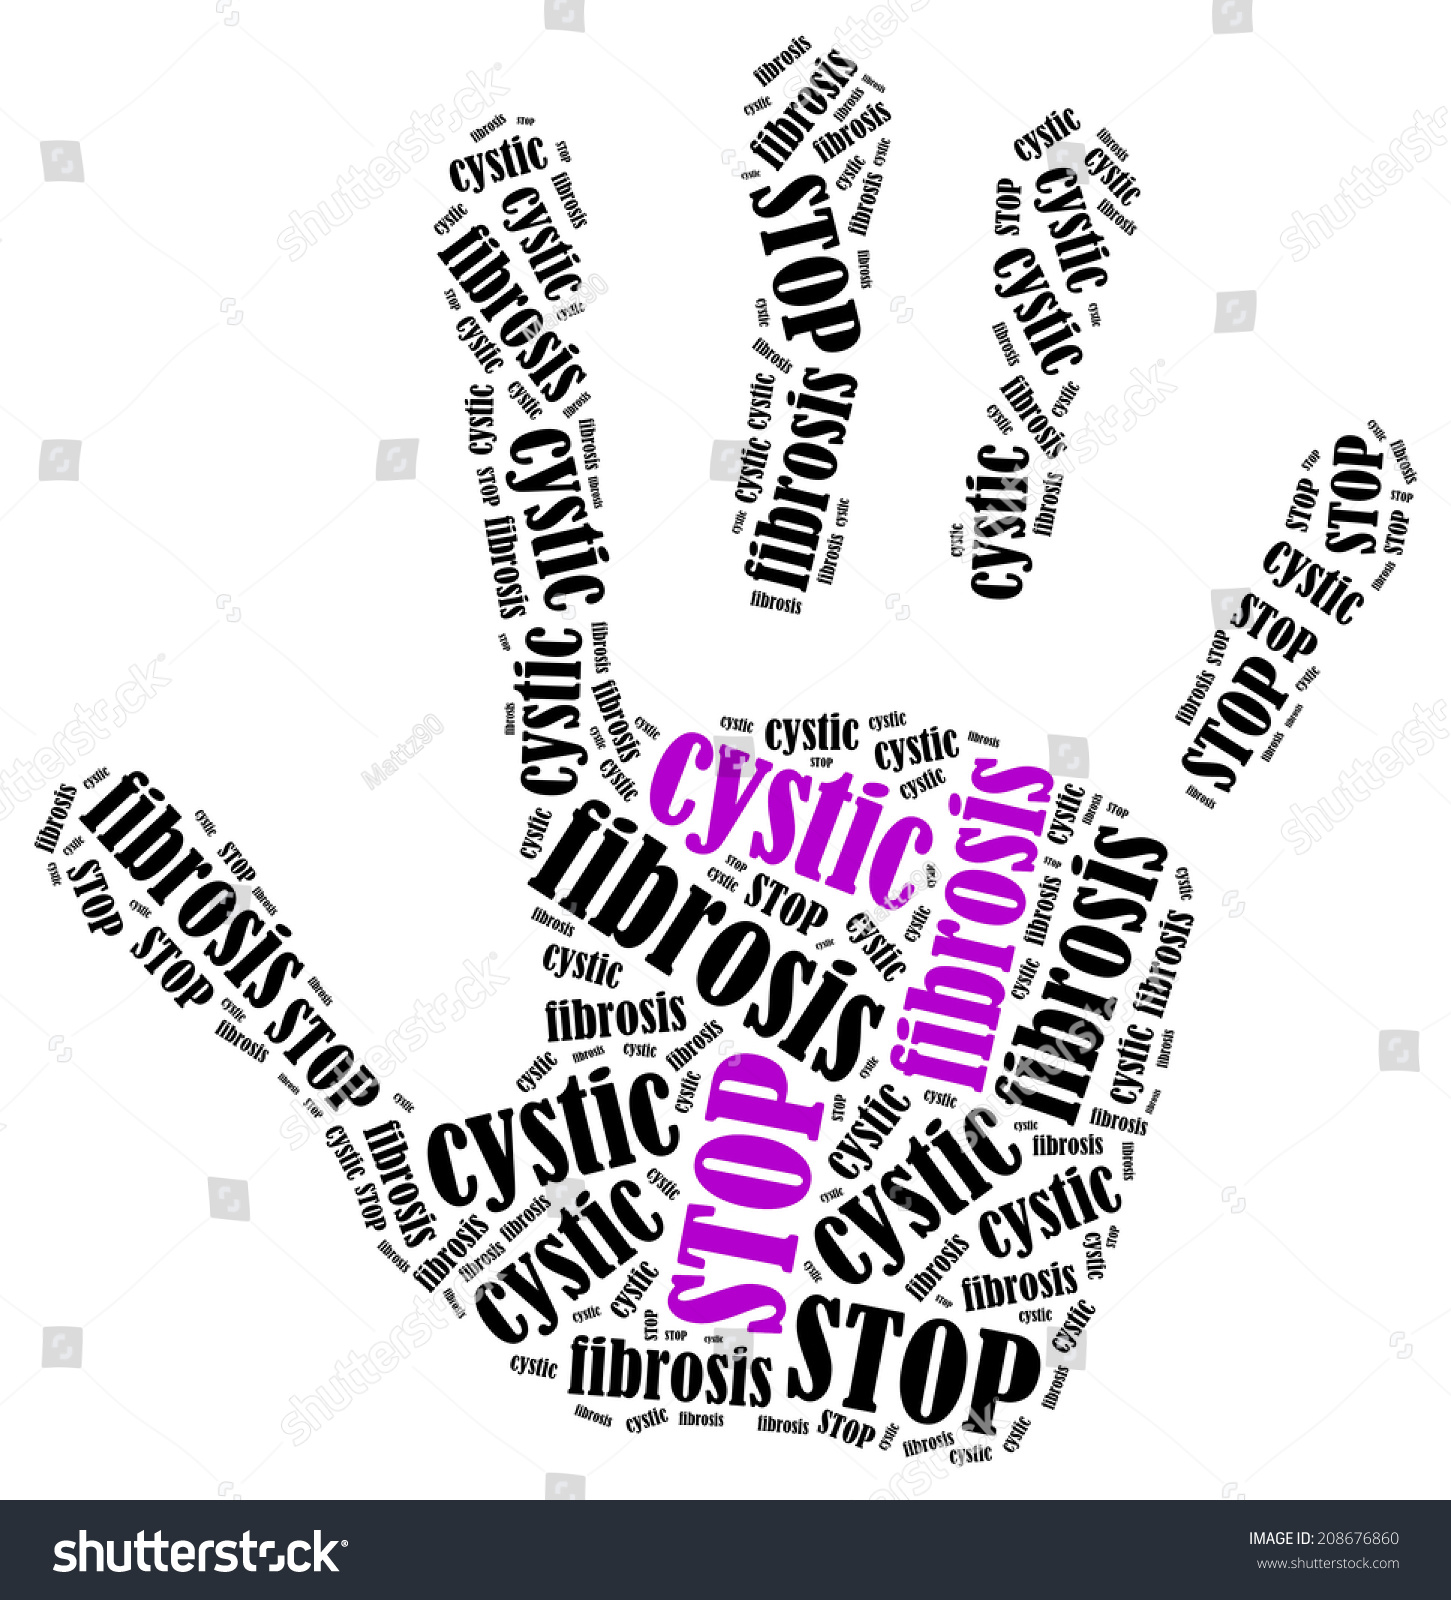 Stop cystic fibrosis word cloud illustration stock illustration stop cystic fibrosis word cloud illustration in shape of hand print showing protest buycottarizona